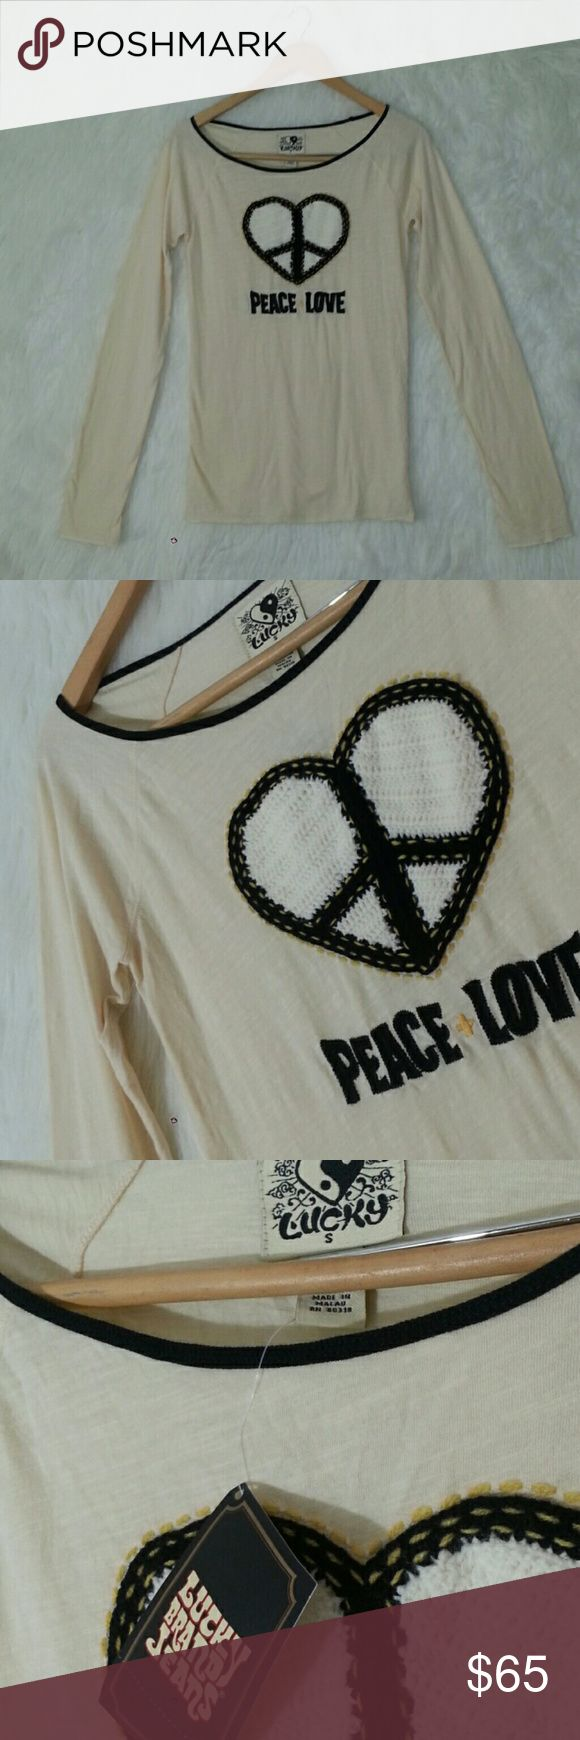 "{ LUCKY Brand } Crochet Heart Peace Love Top - NEW Our household includes a military veteran with cancer. Please respect our time!  ***NO TRADES WHATSOEVER*** <<< Reasonable offers welcome >>> All items available for purchase unless it says SOLD or NOT FOR SALE.  RARE! Cream long sleeve top with crocheted heart applique and PEACE + LOVE embroidery. 100% cotton.  Light weight. The back is plain. SMALL...Bust is 33"". Top is 26"" long...BRAND NEW, NEVER WORN WITH ORIGINAL TAGS.   I work in L.A…"